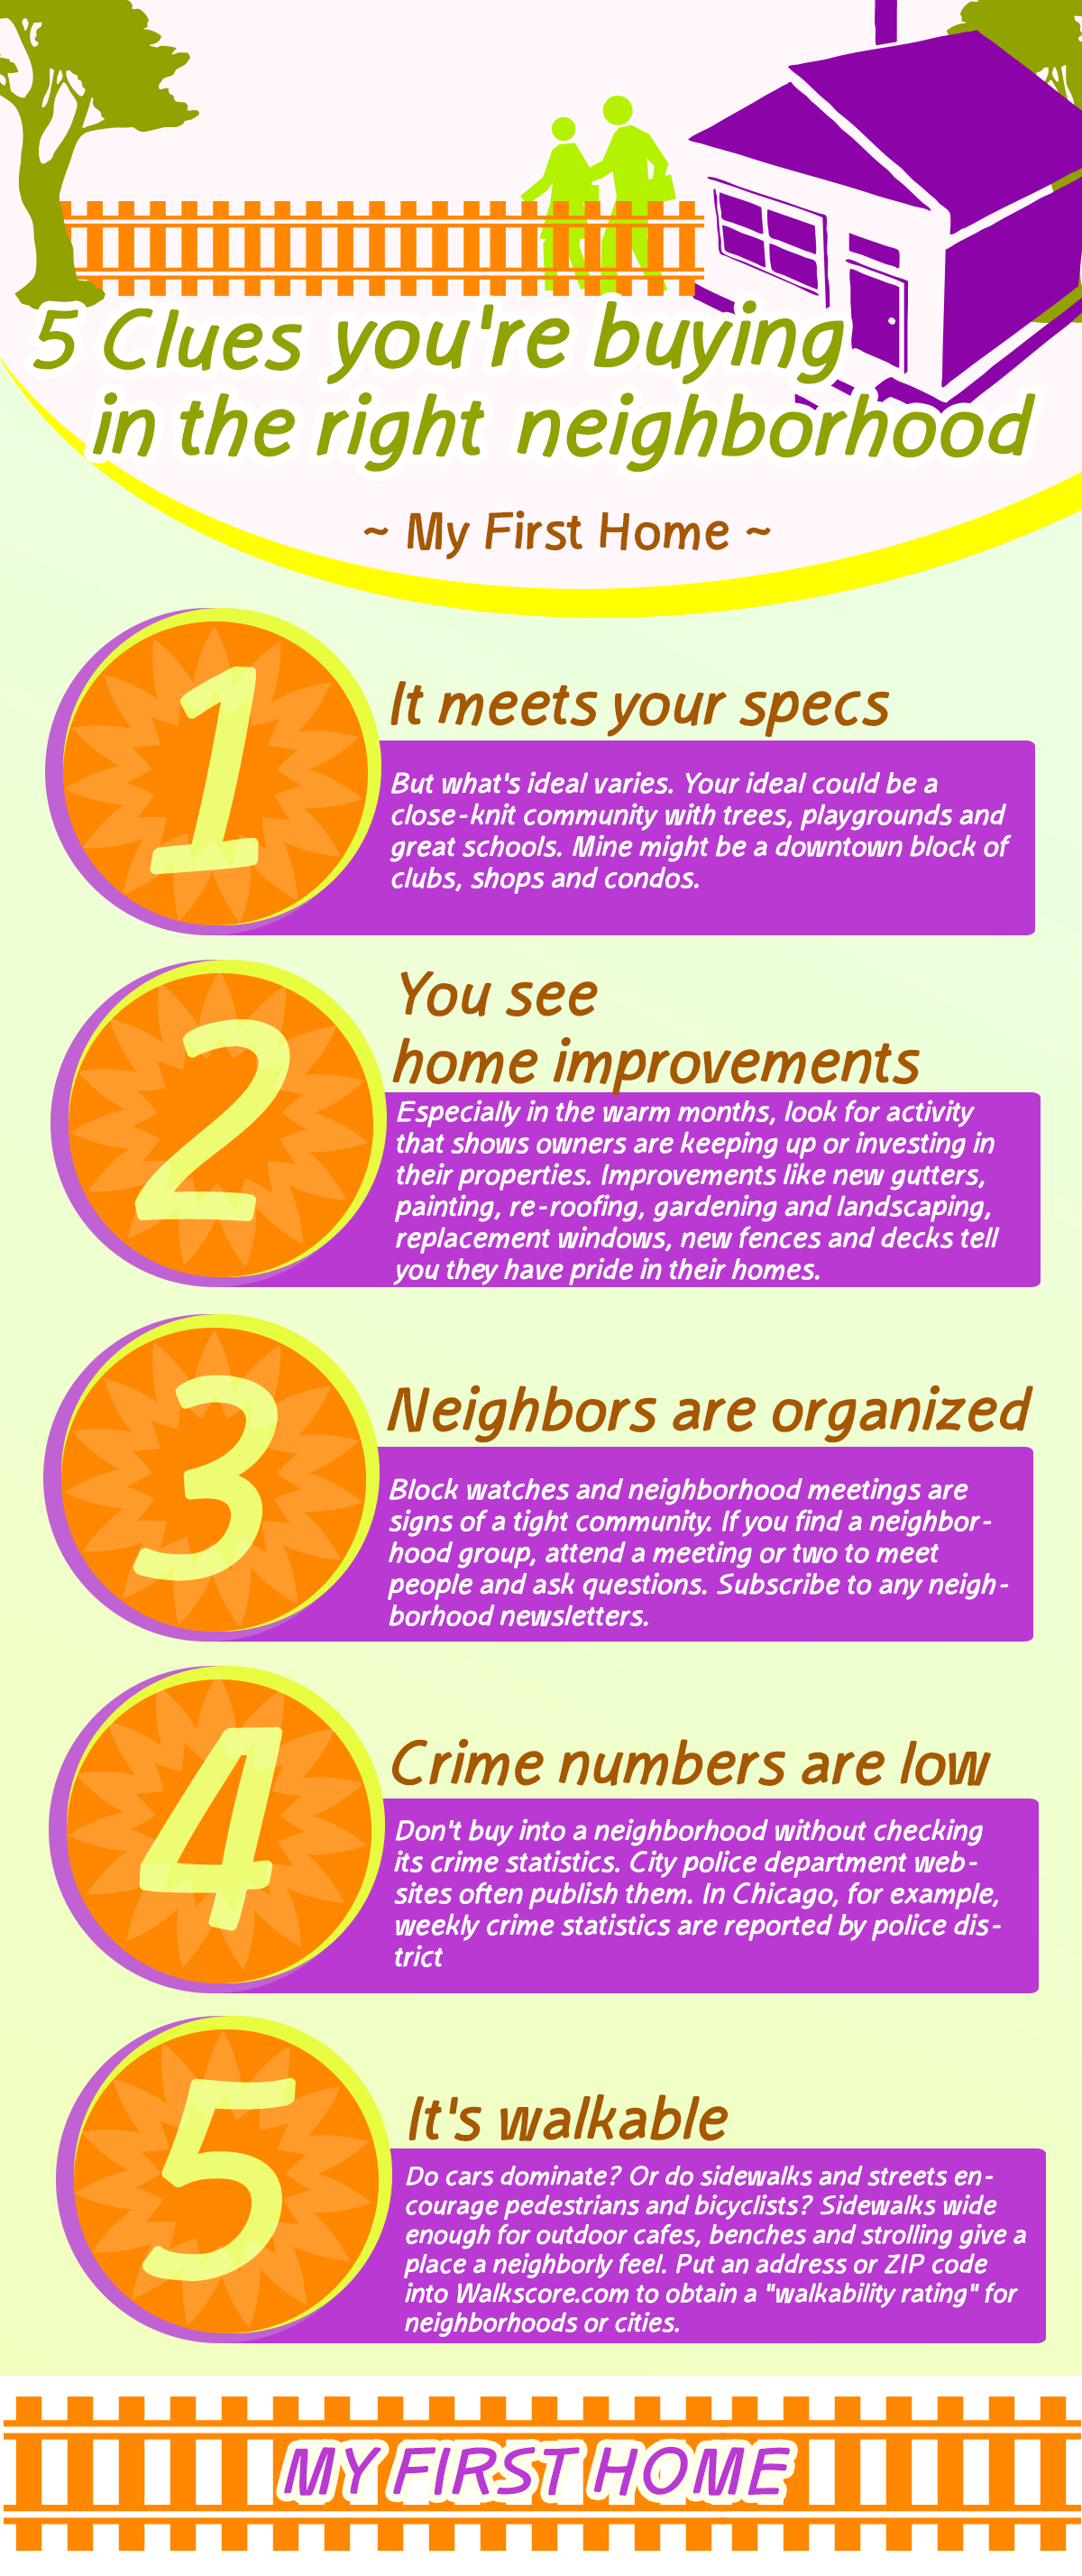 5 clues you're buying in the right neighborhood